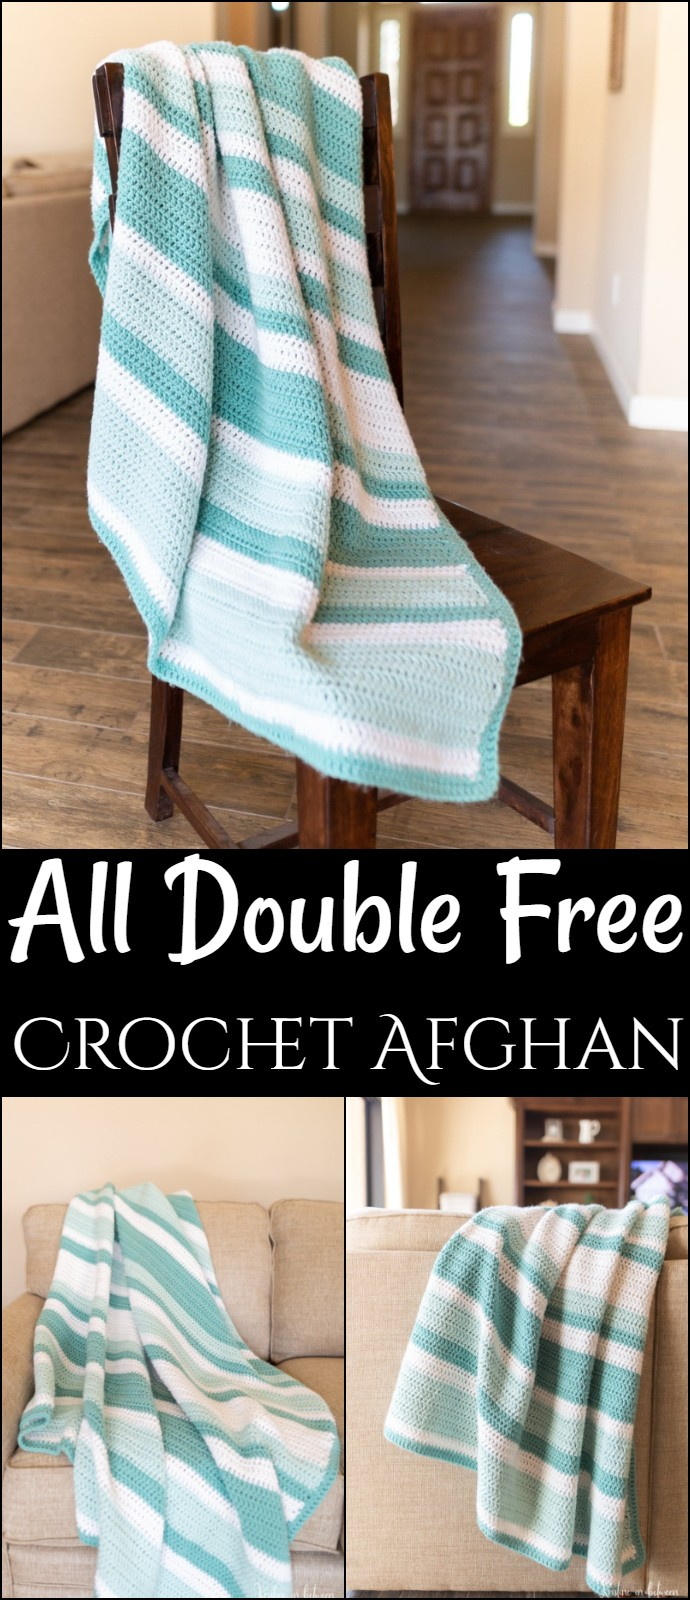 All Double Free Crochet Afghan